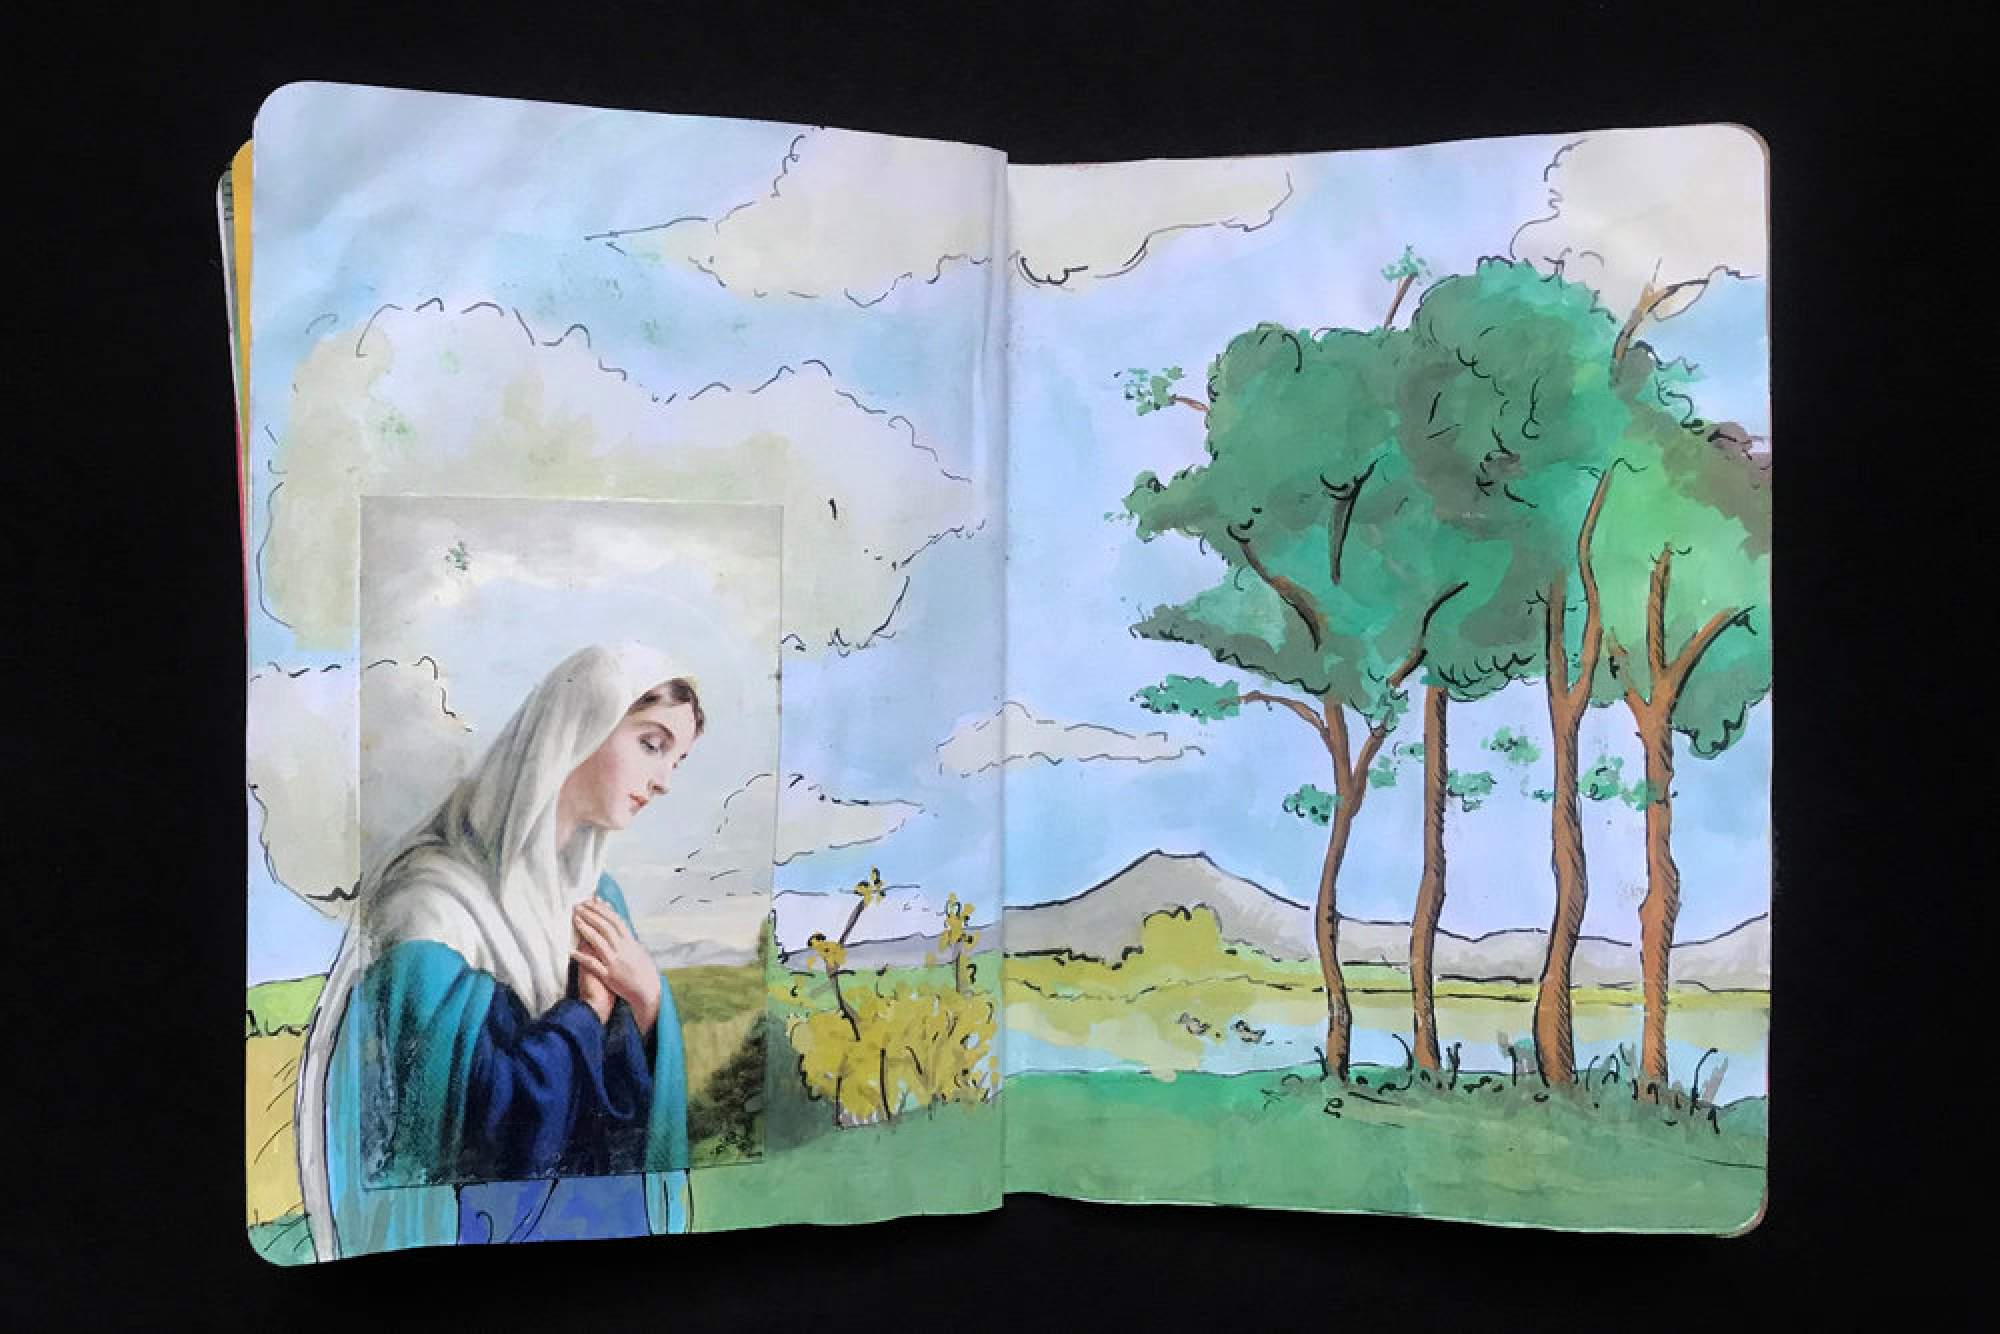 Collage/watercolor/ink, The Sketchbook Project